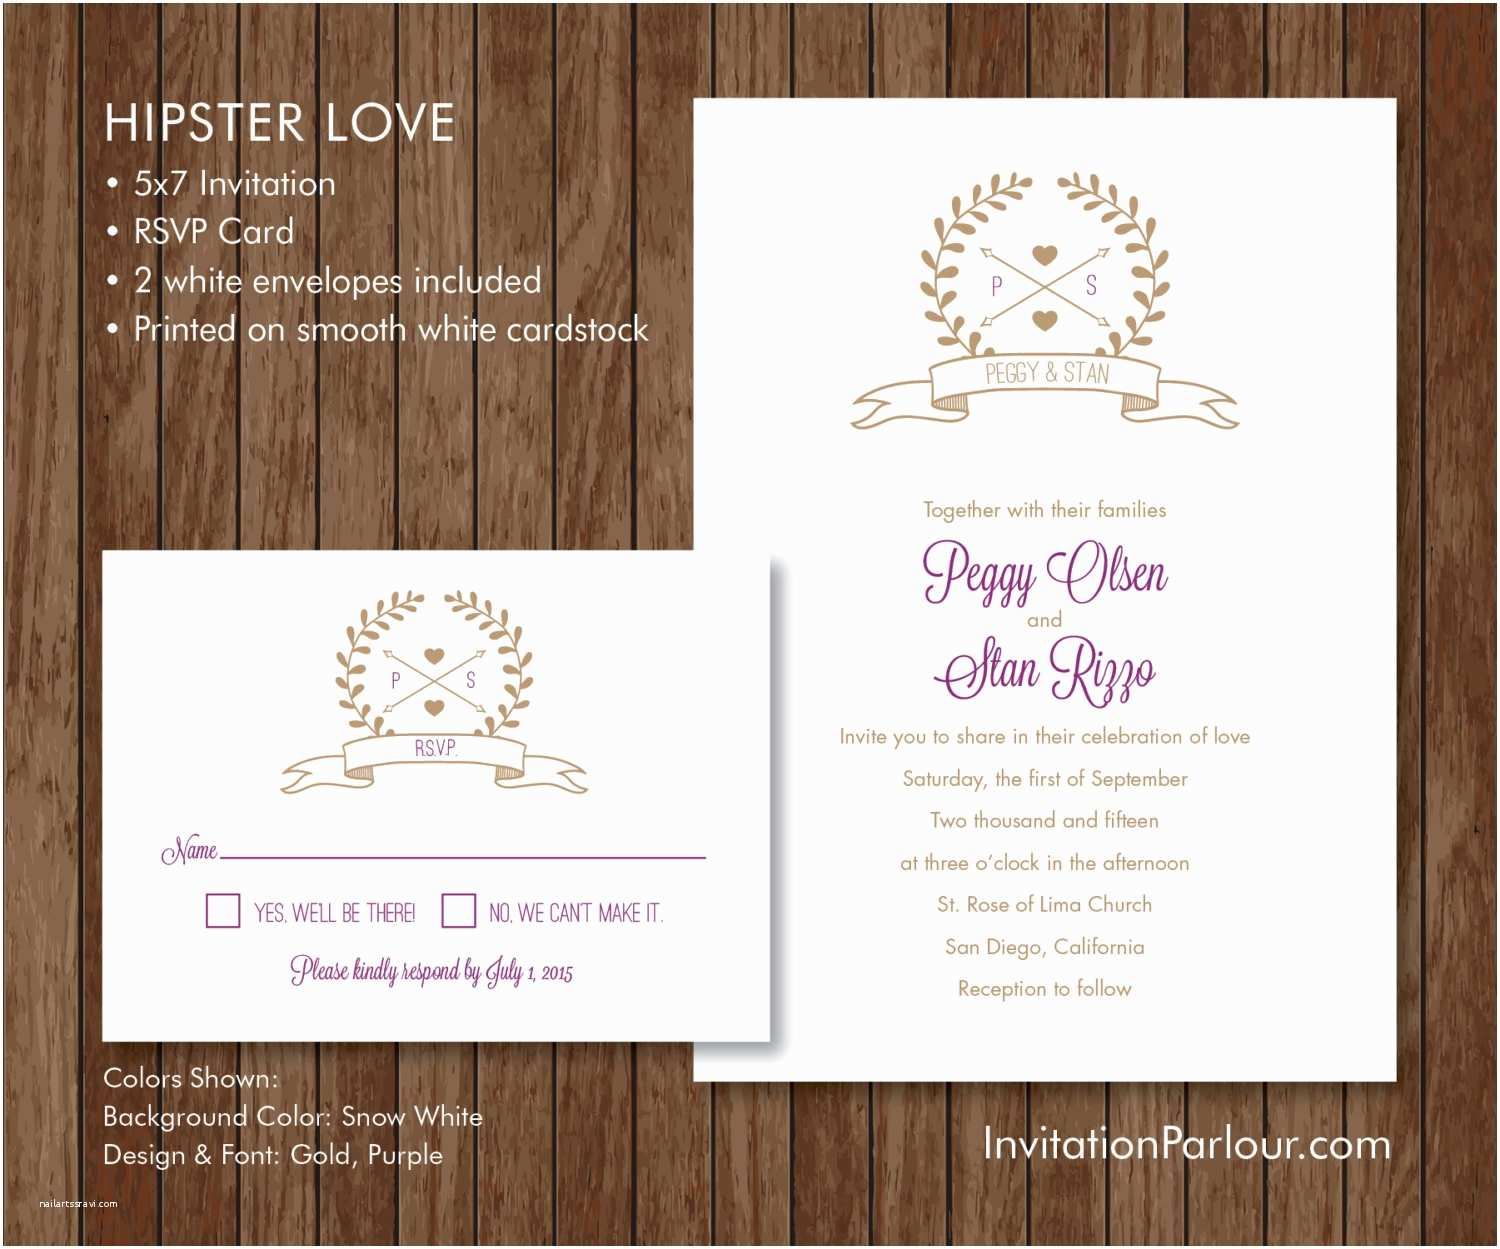 Hipster Wedding Invitations Hipster Love Wedding Invitation Set Printed Customizable